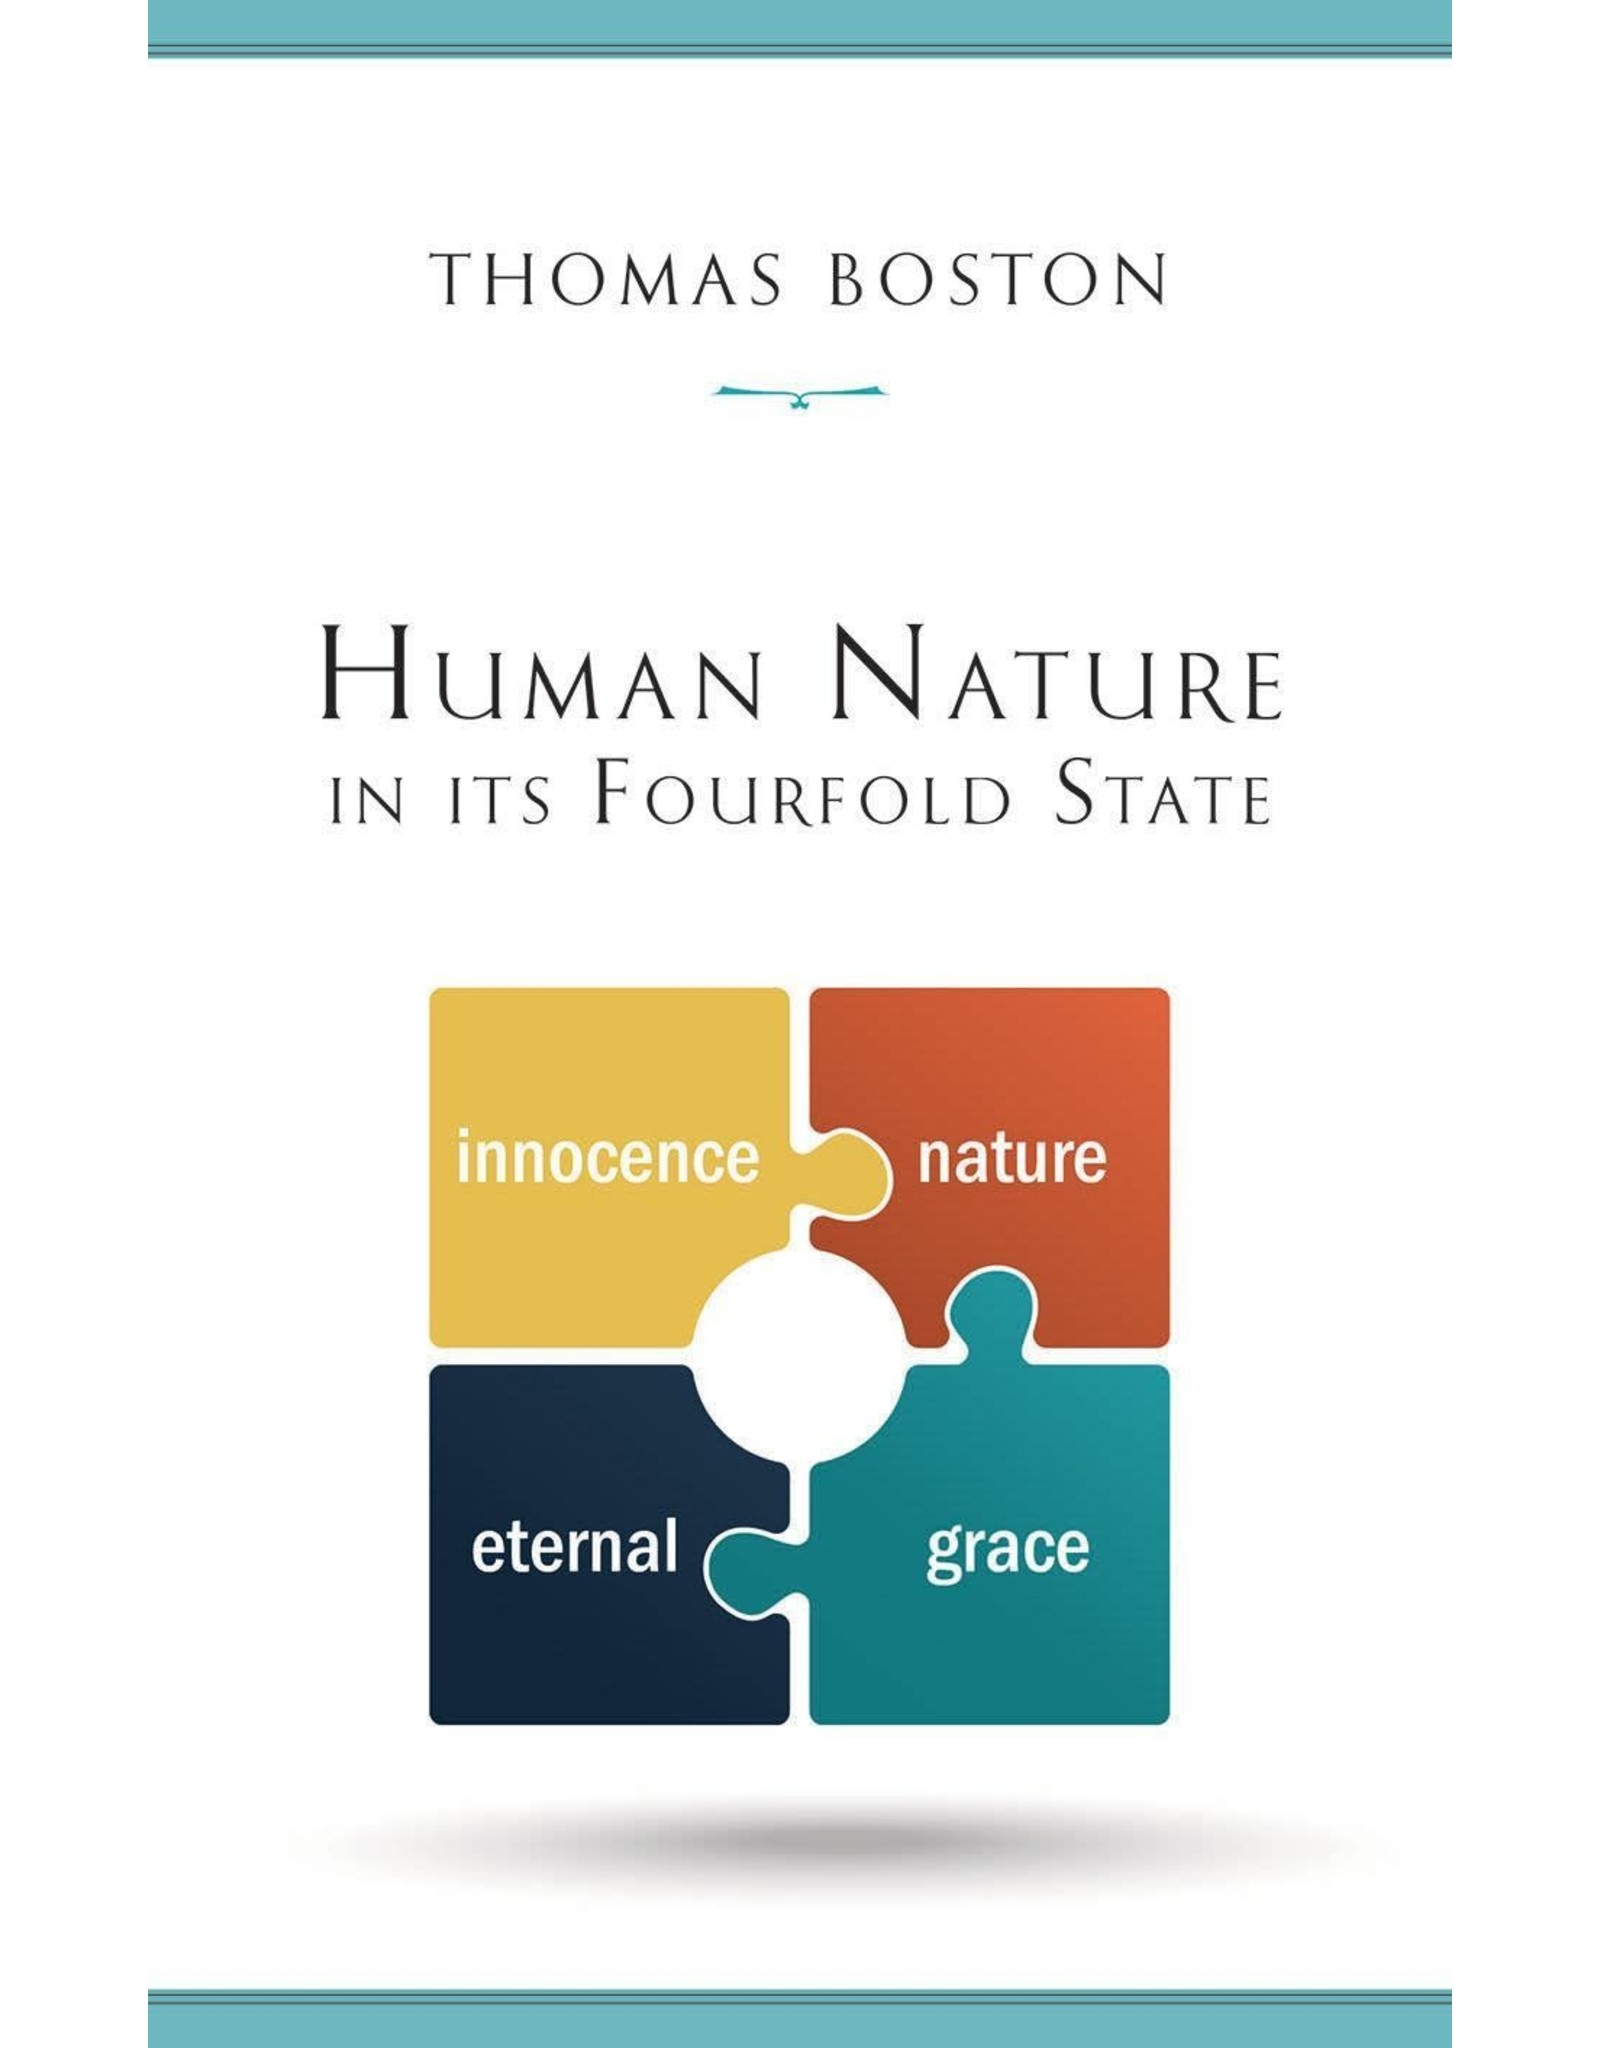 Boston Human Nature in it's Fourfold State